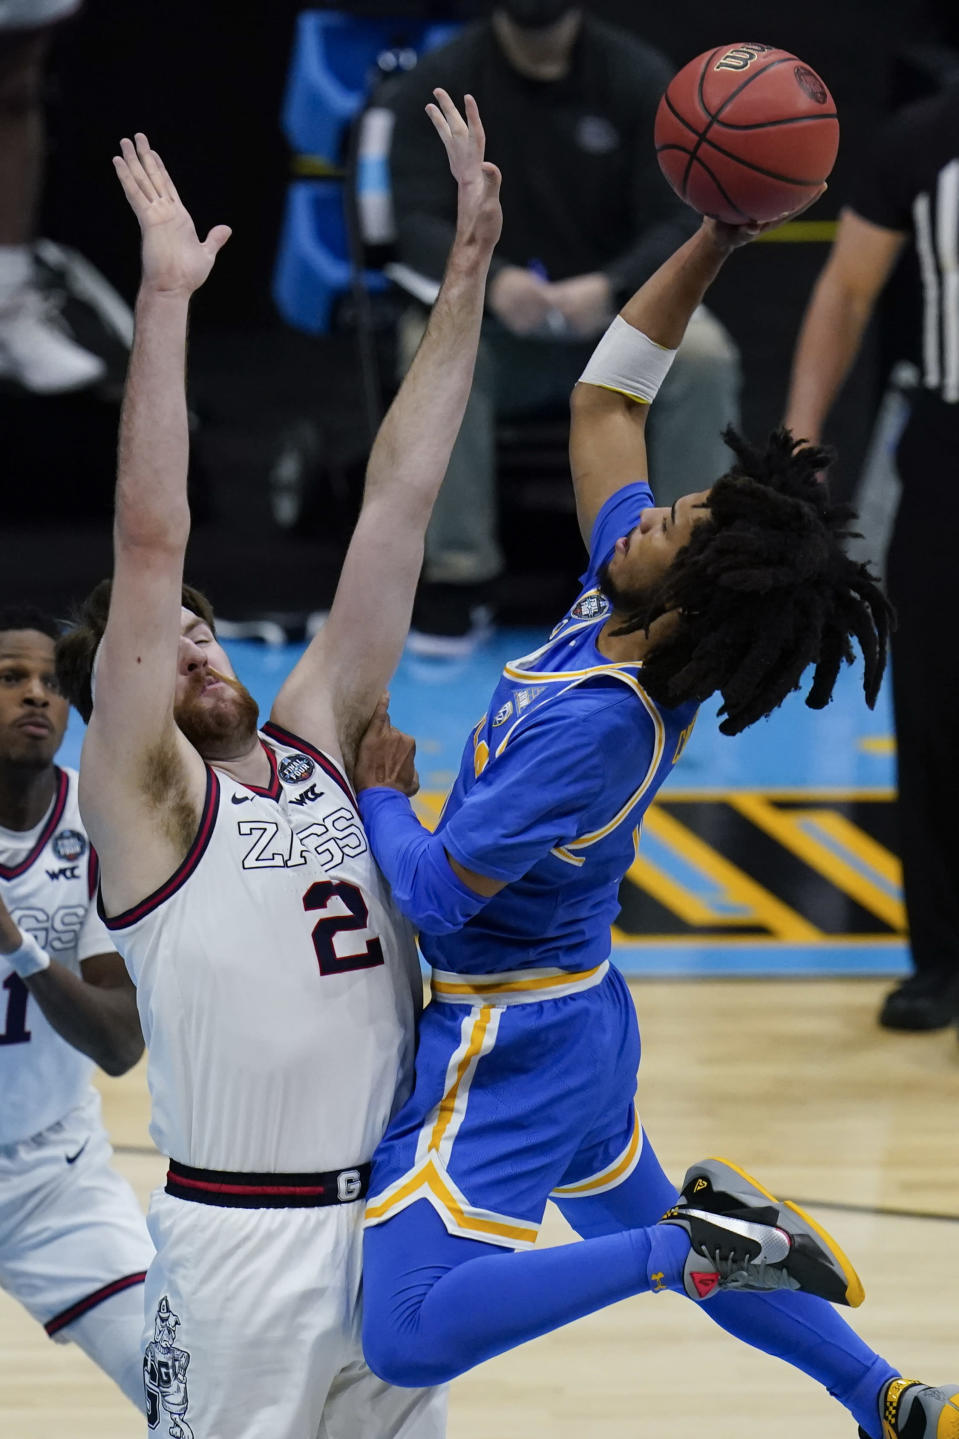 UCLA guard Tyger Campbell, right, shoots over Gonzaga forward Drew Timme (2) during the first half of a men's Final Four NCAA college basketball tournament semifinal game, Saturday, April 3, 2021, at Lucas Oil Stadium in Indianapolis. (AP Photo/Michael Conroy)